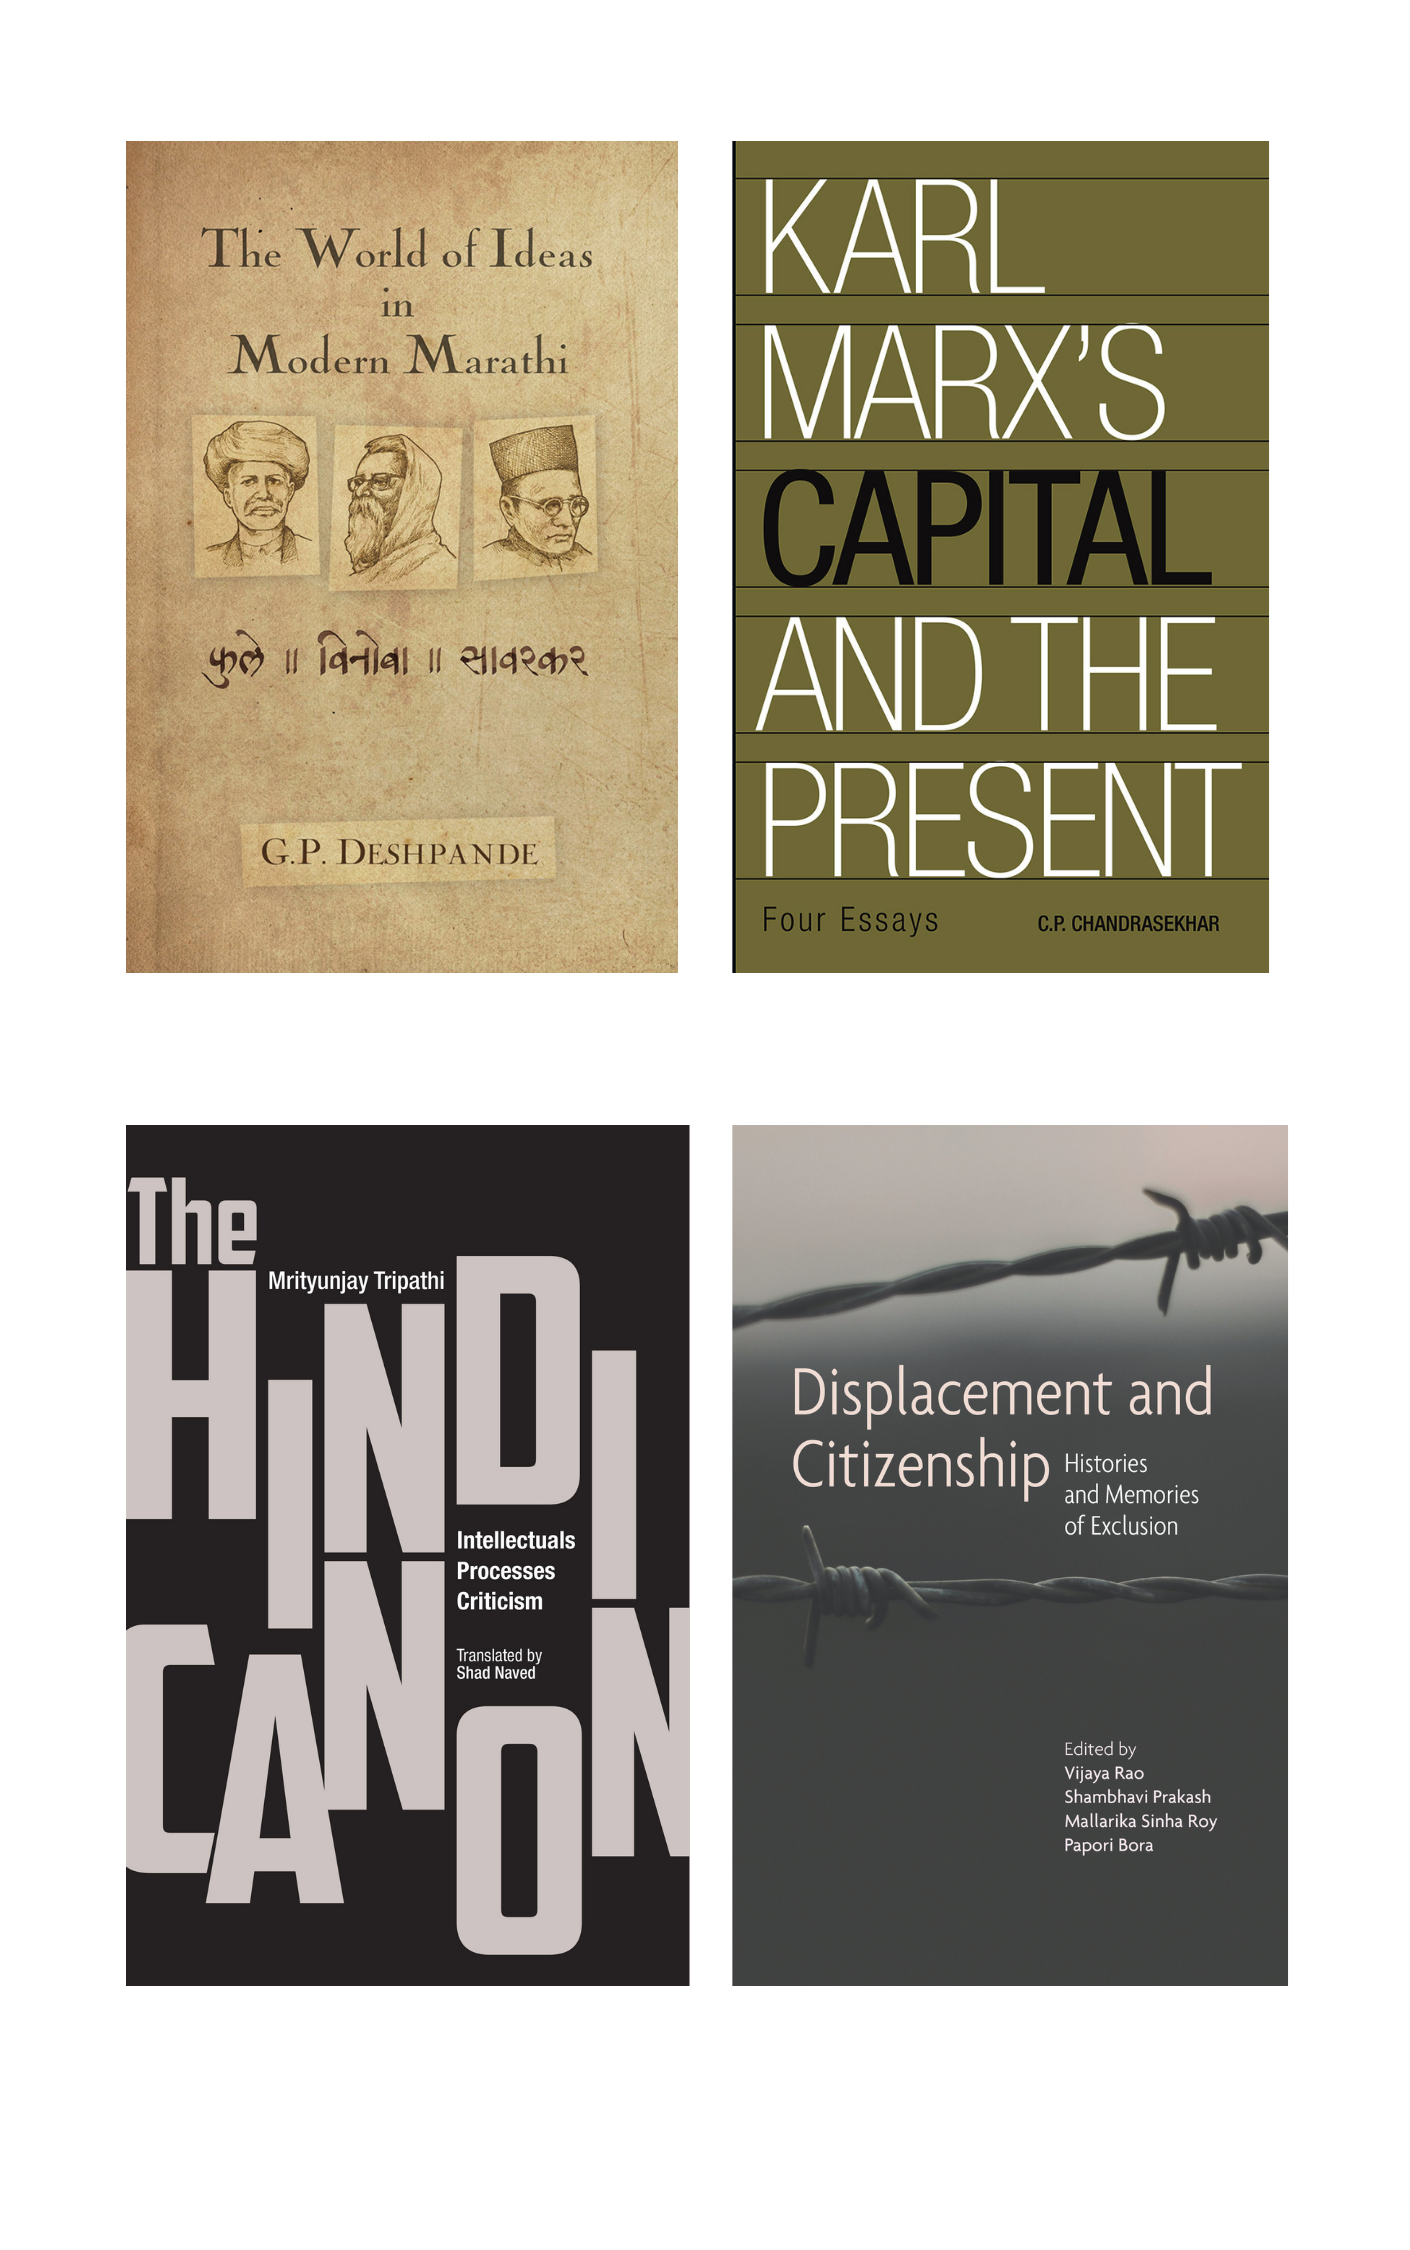 Announcing the launch of our e-books